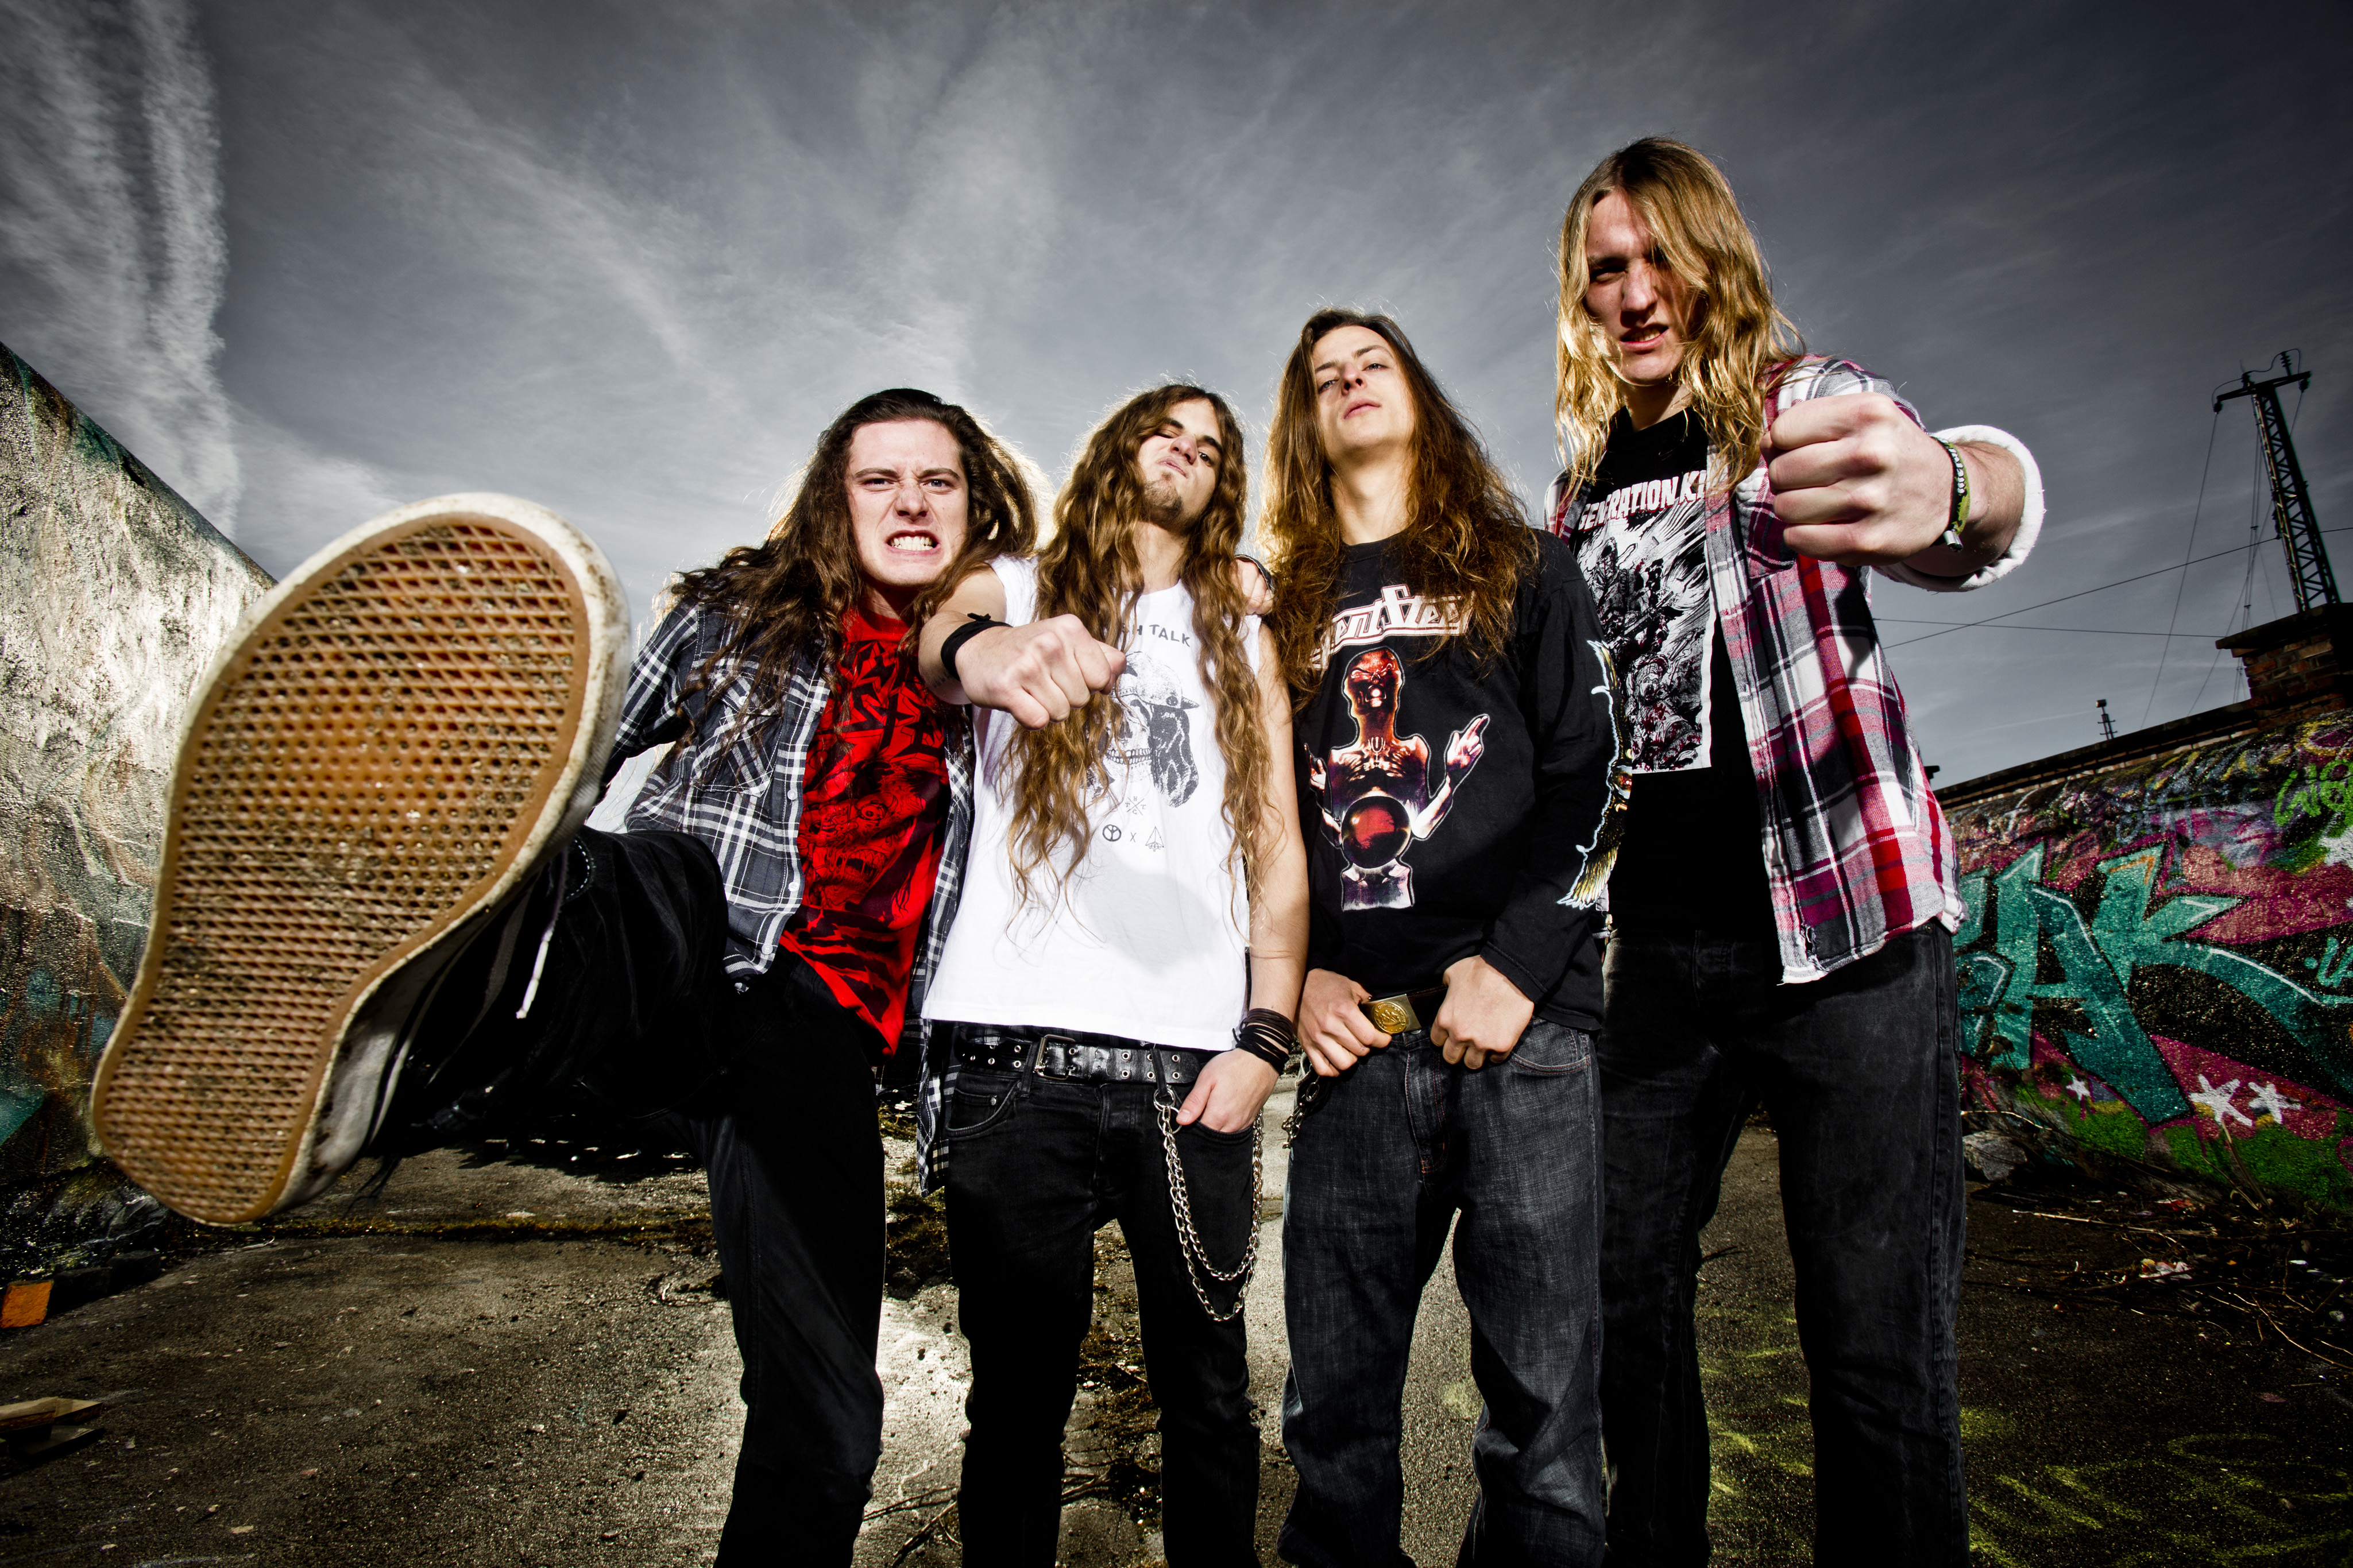 Interview with Bene from Dust Bolt